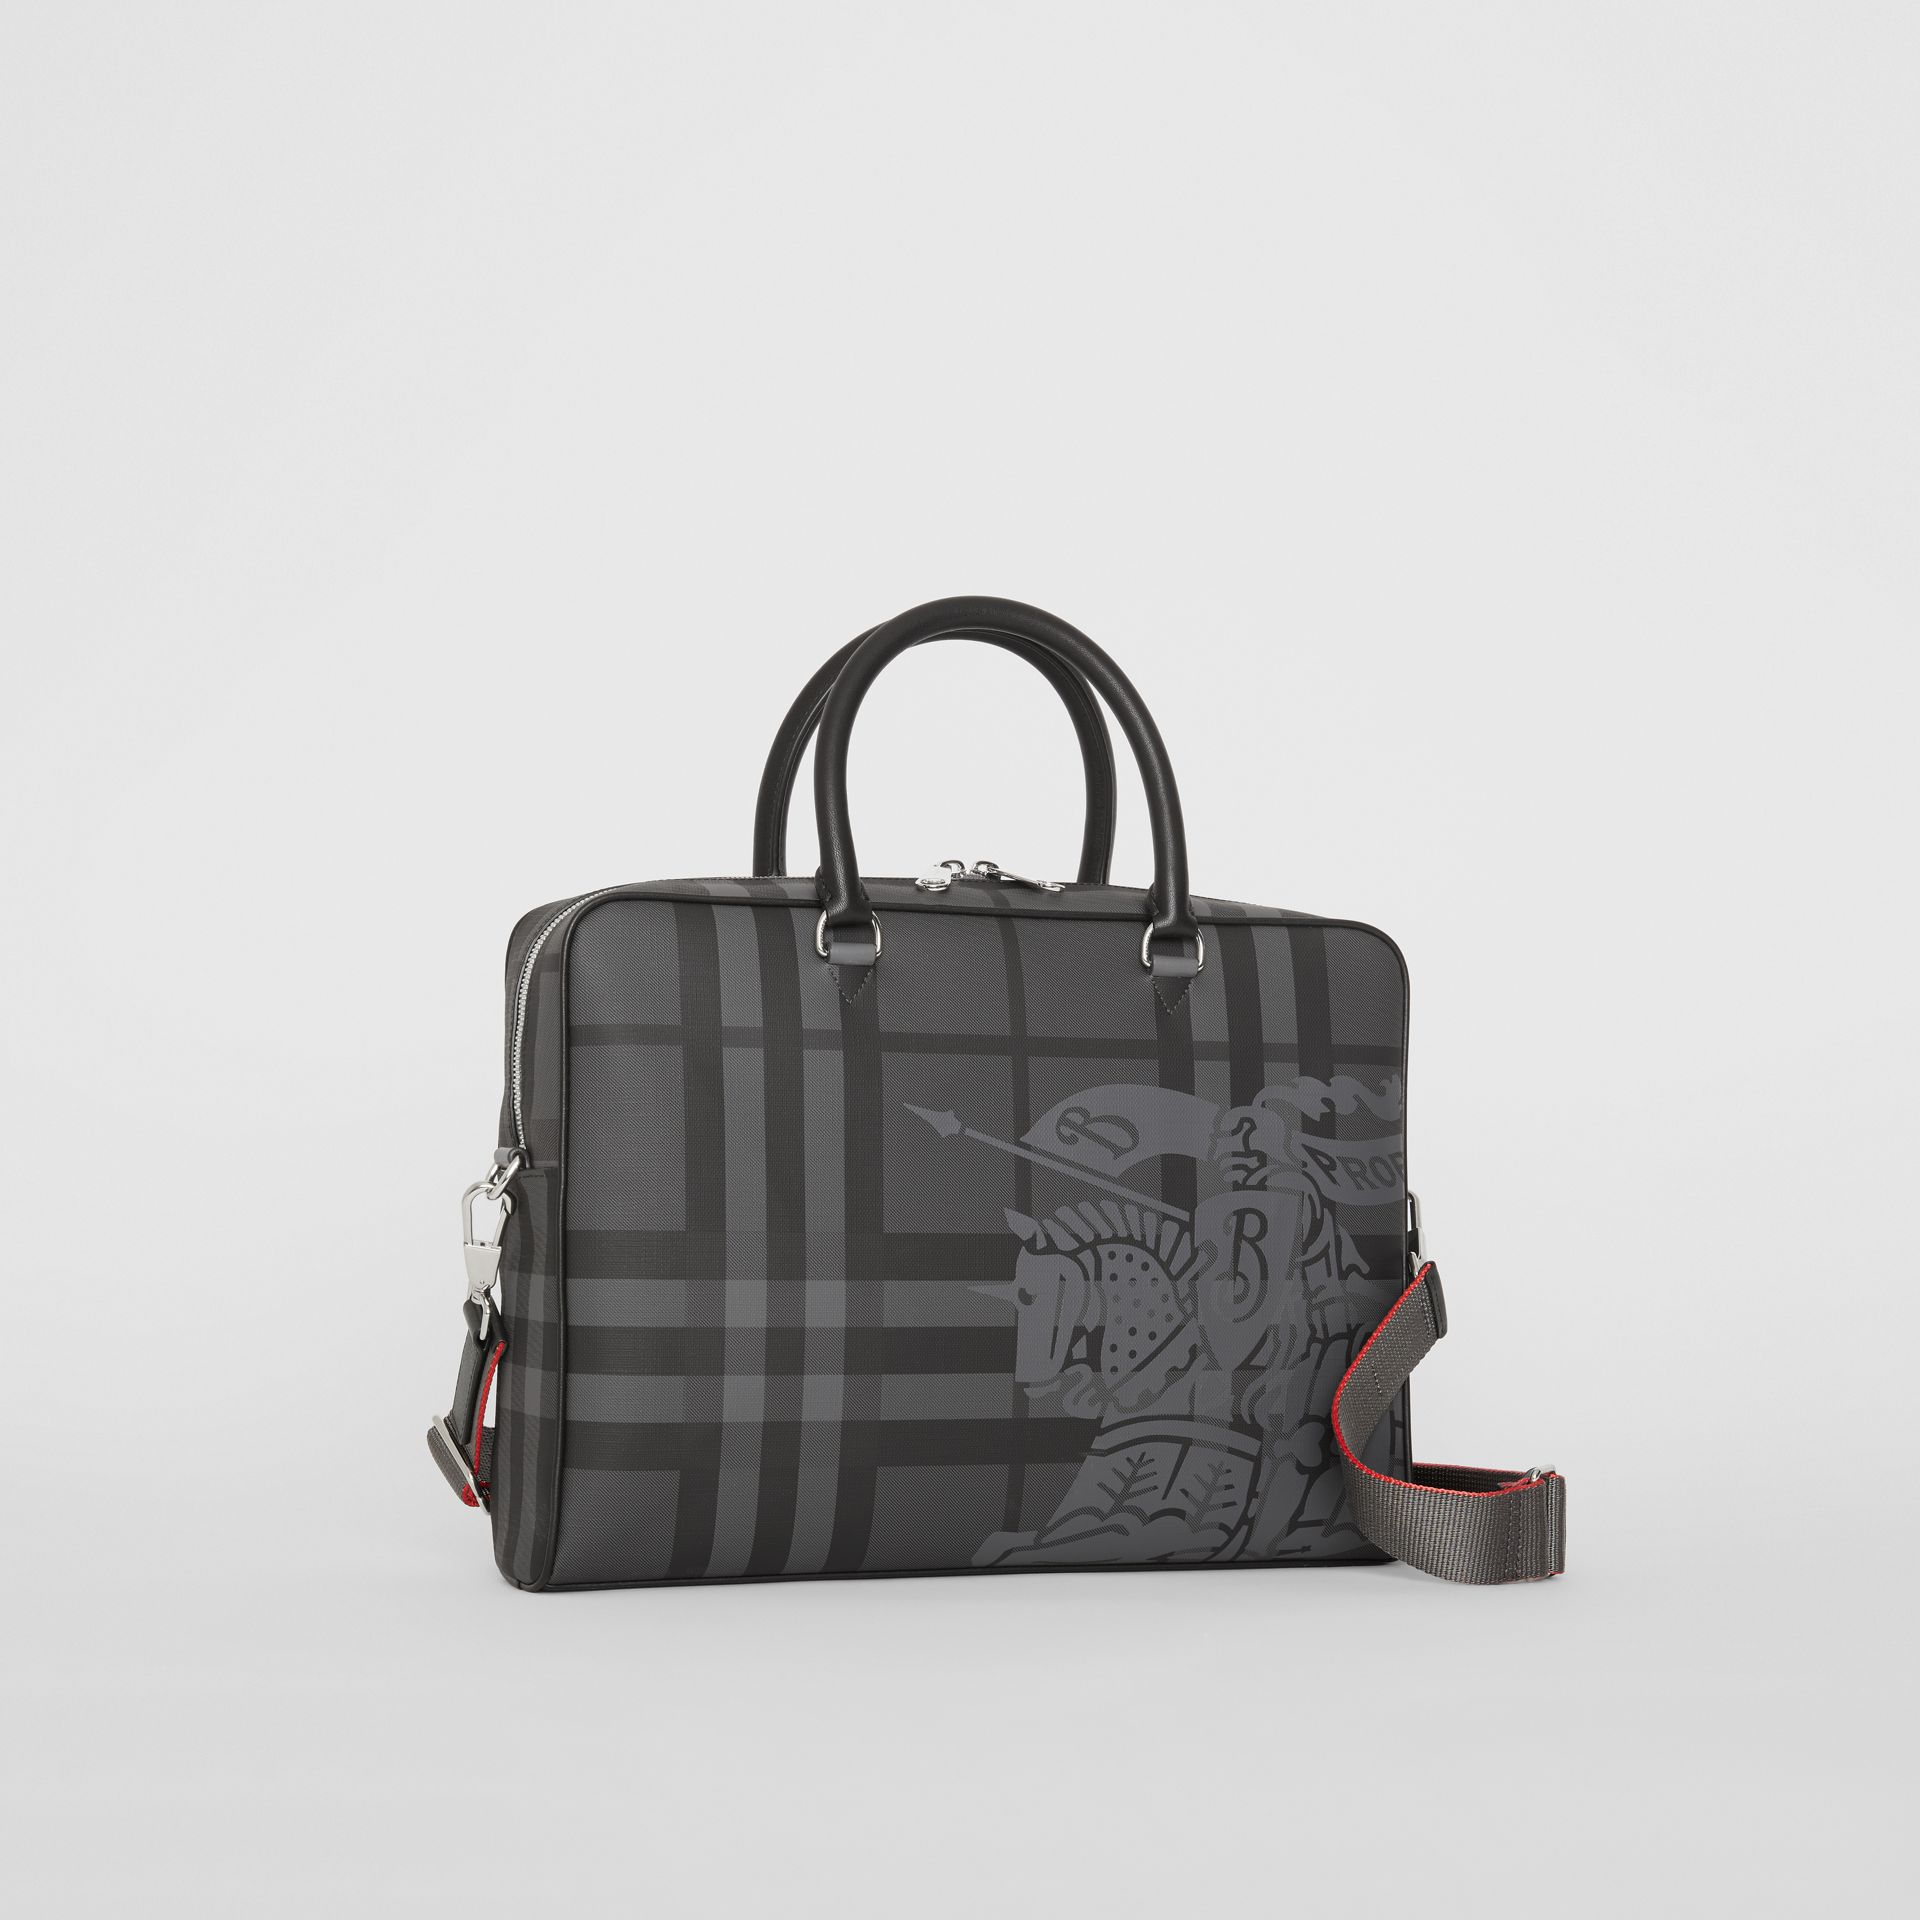 EKD London Check and Leather Briefcase in Charcoal/black - Men | Burberry United Kingdom - gallery image 6